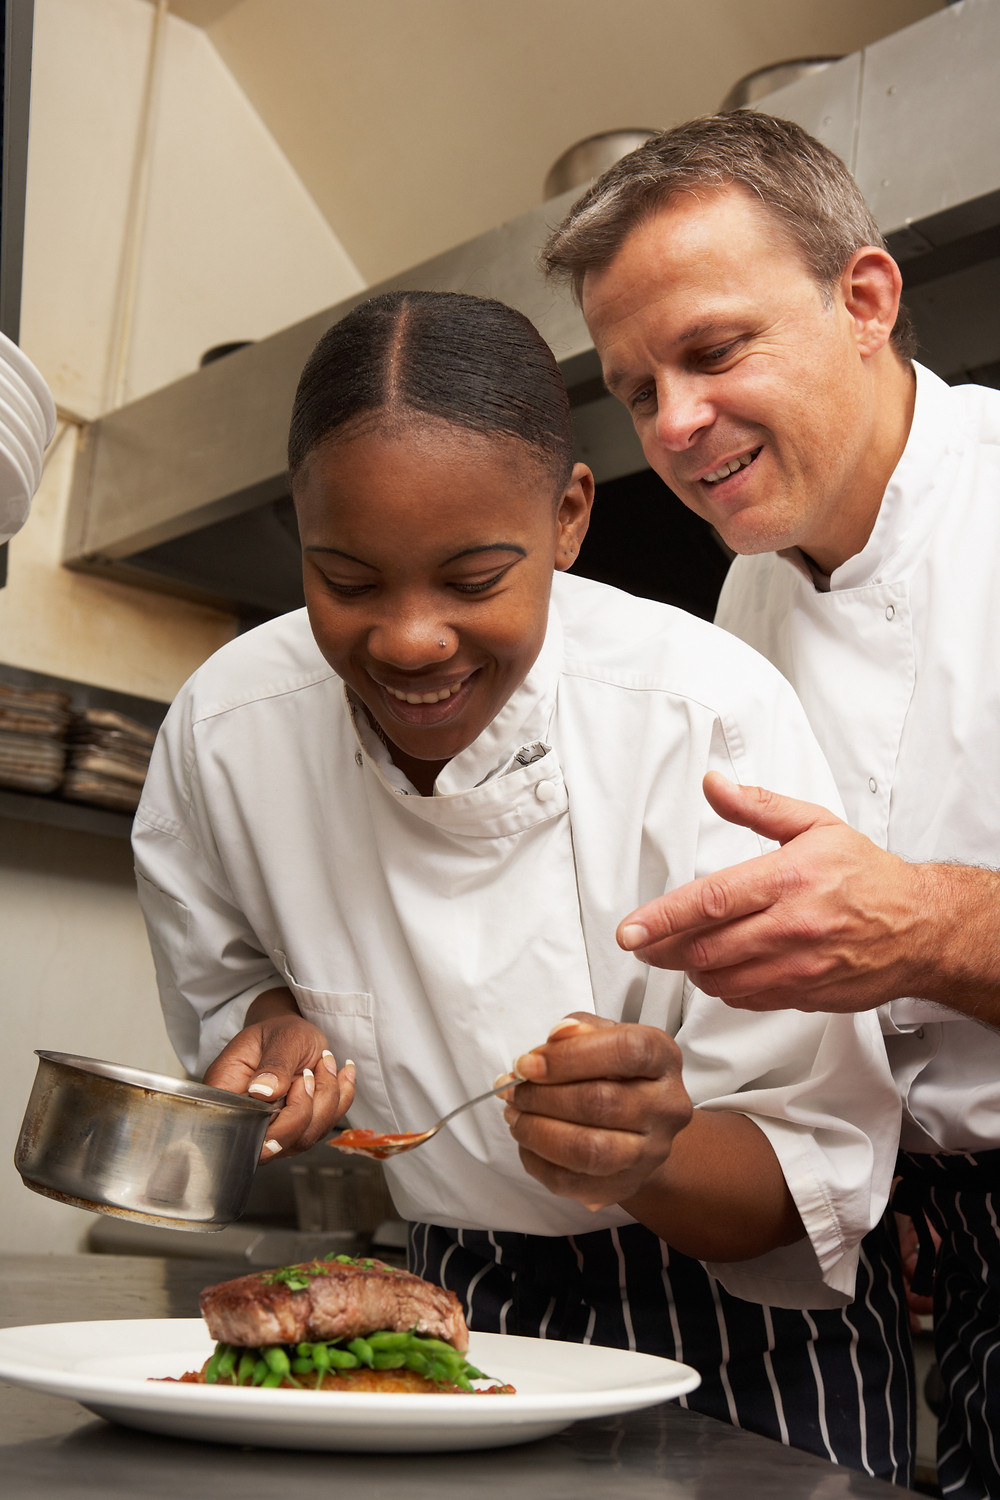 Female chef apprentice, supported by emplyer